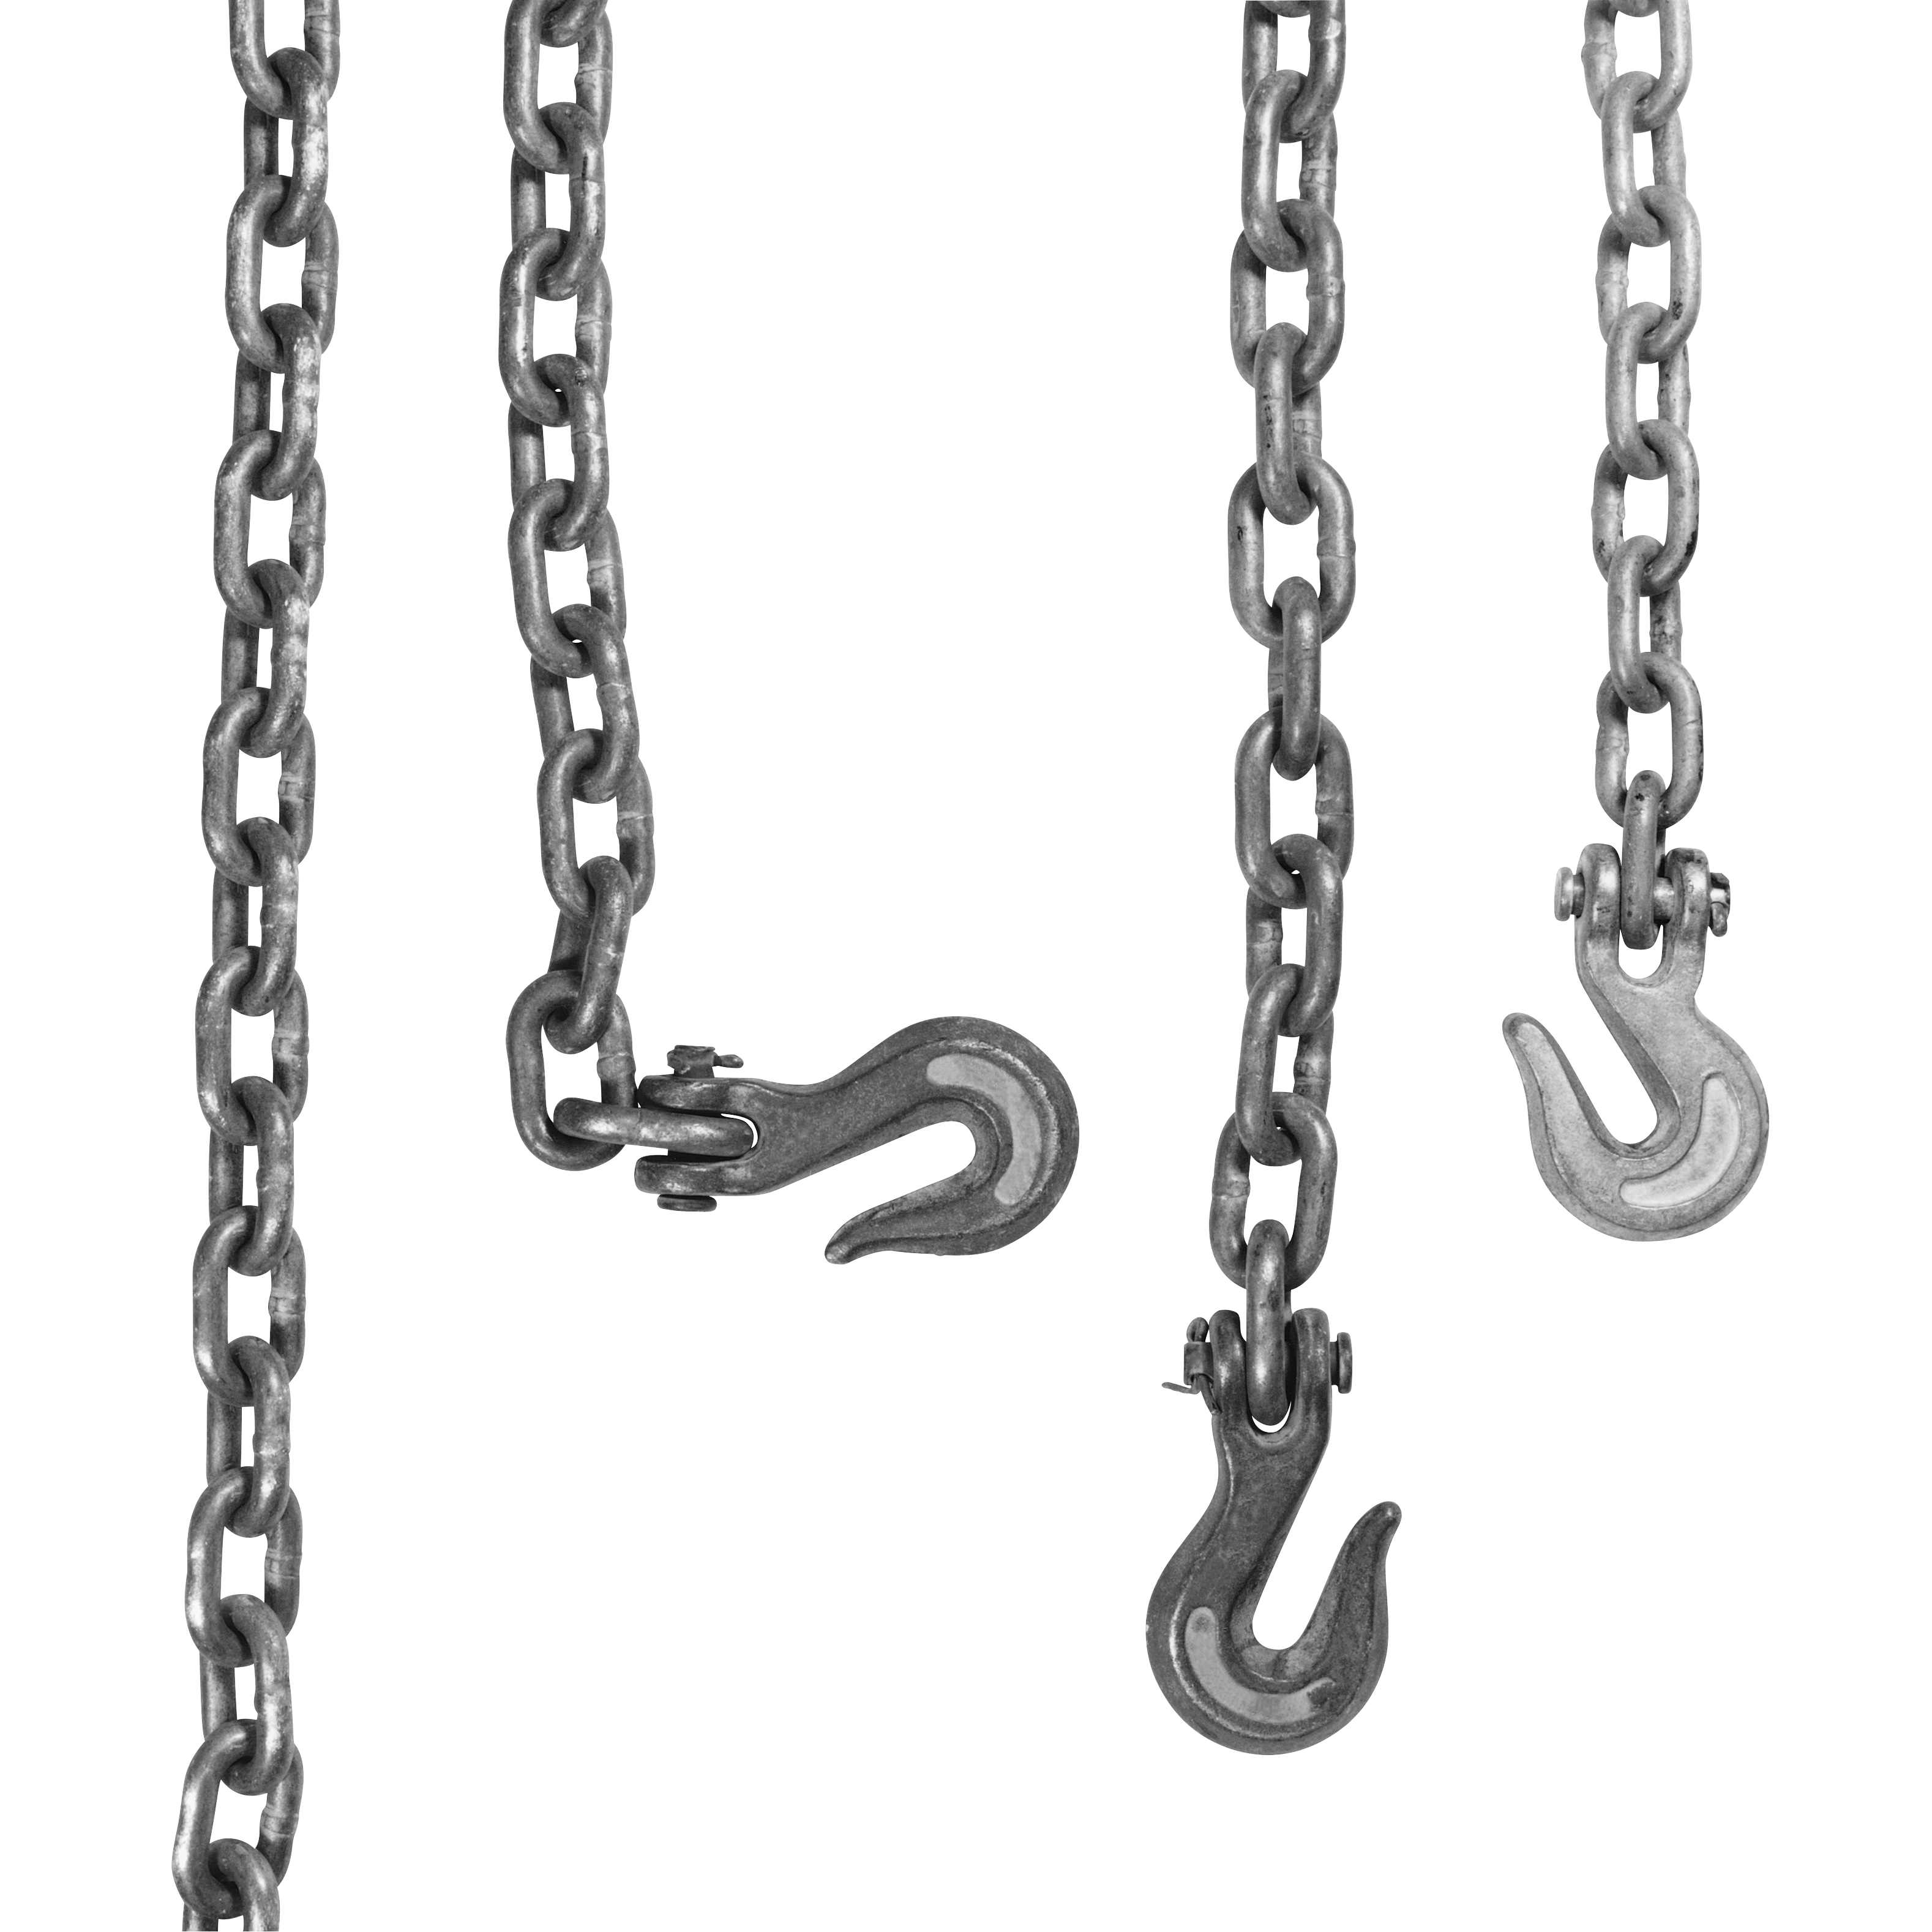 Chain Png Transparent Background Free Download 42701 Freeiconspng Are you searching for chain png images or vector? chain png transparent background free